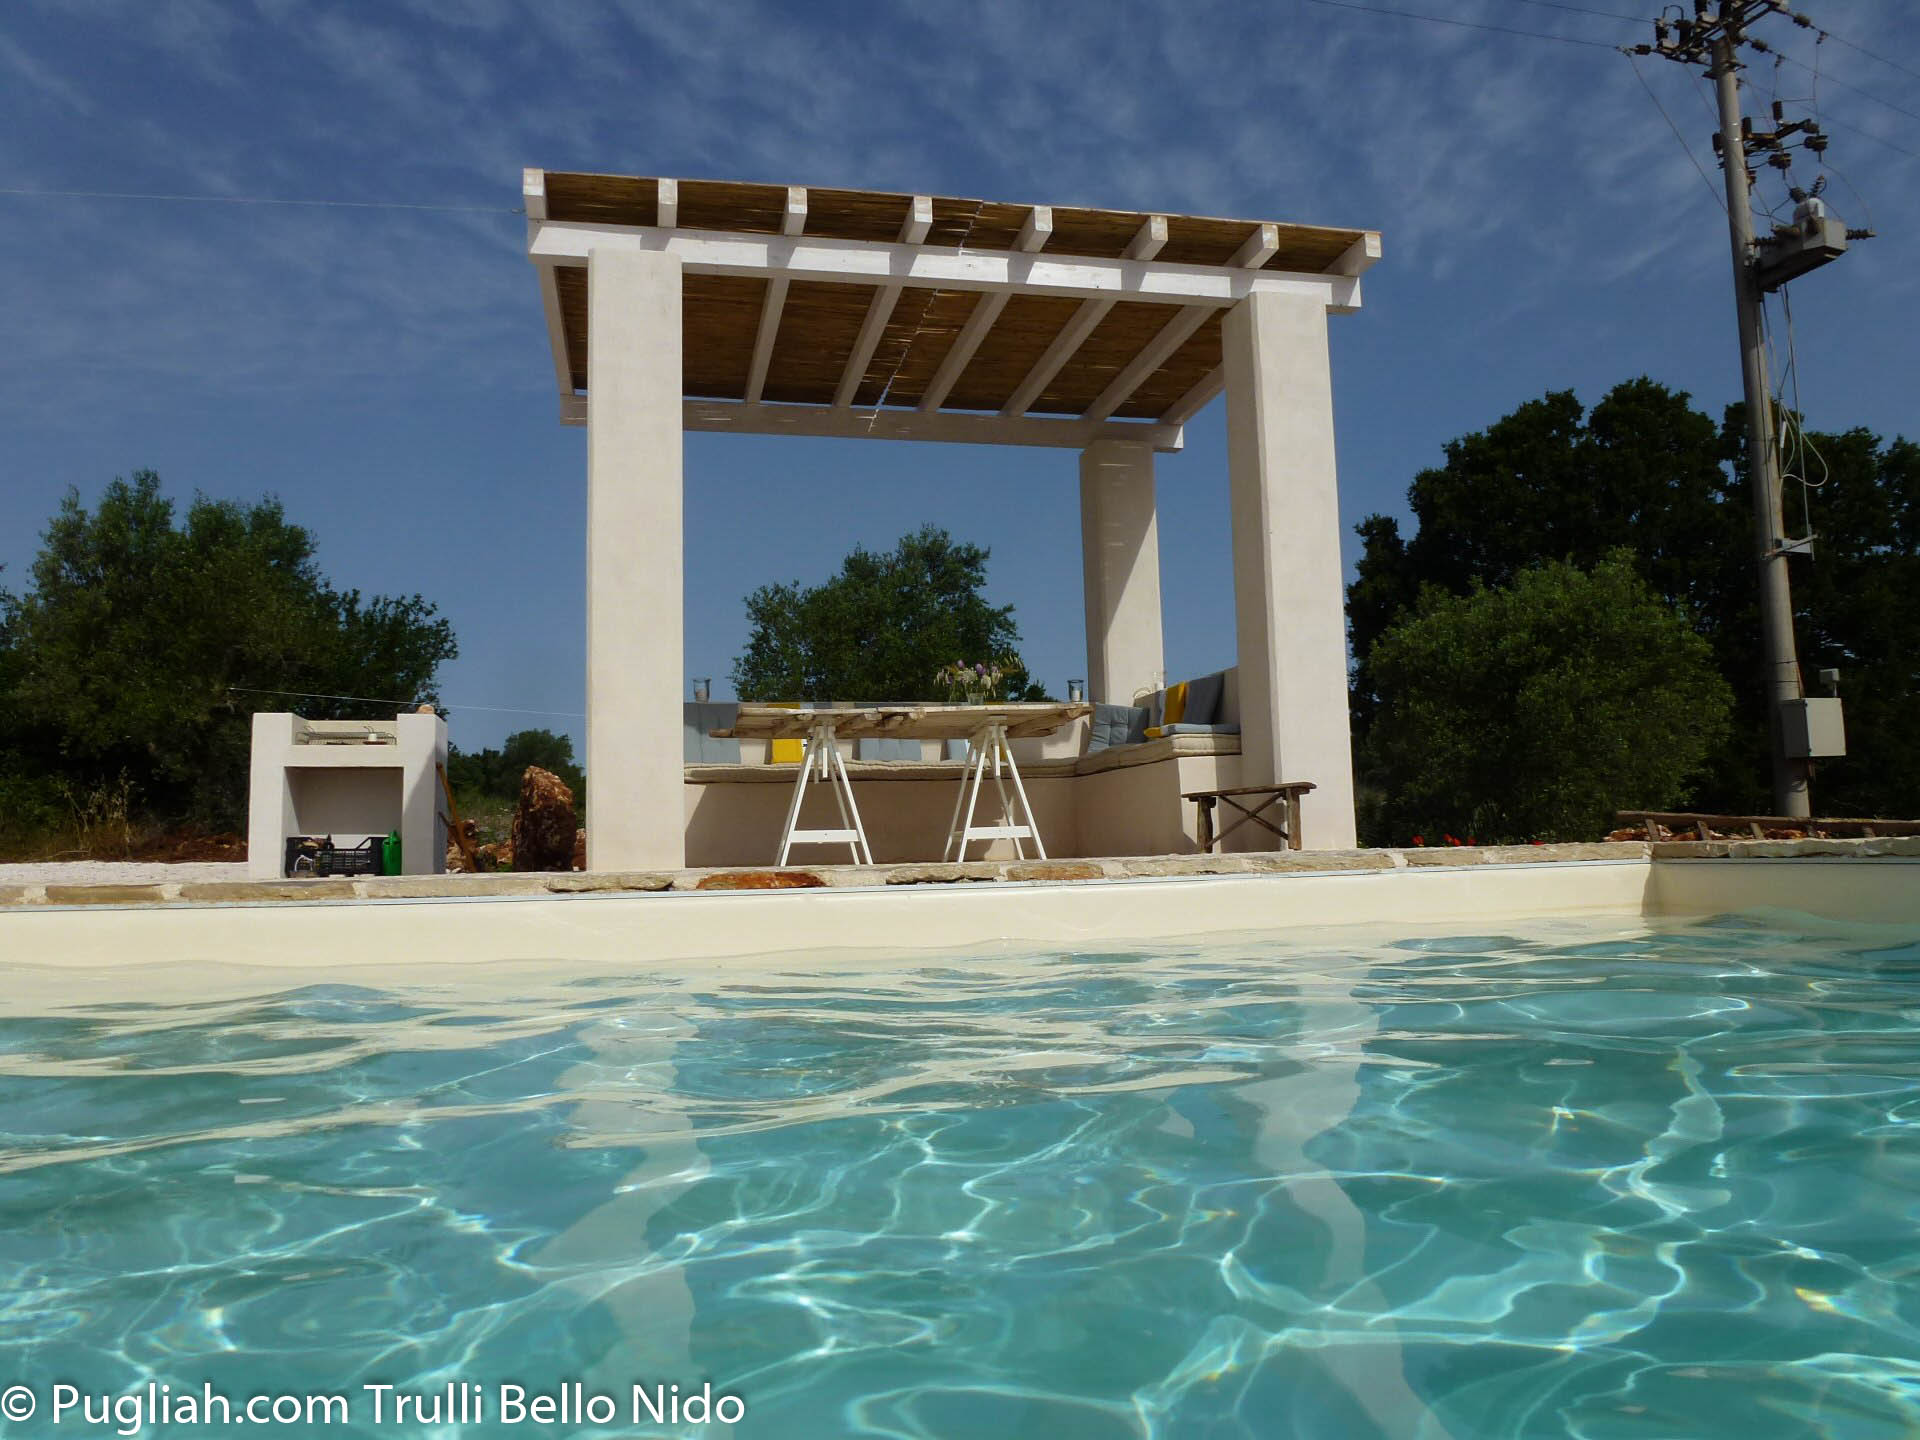 Shaded poolside pergola with seating/dining